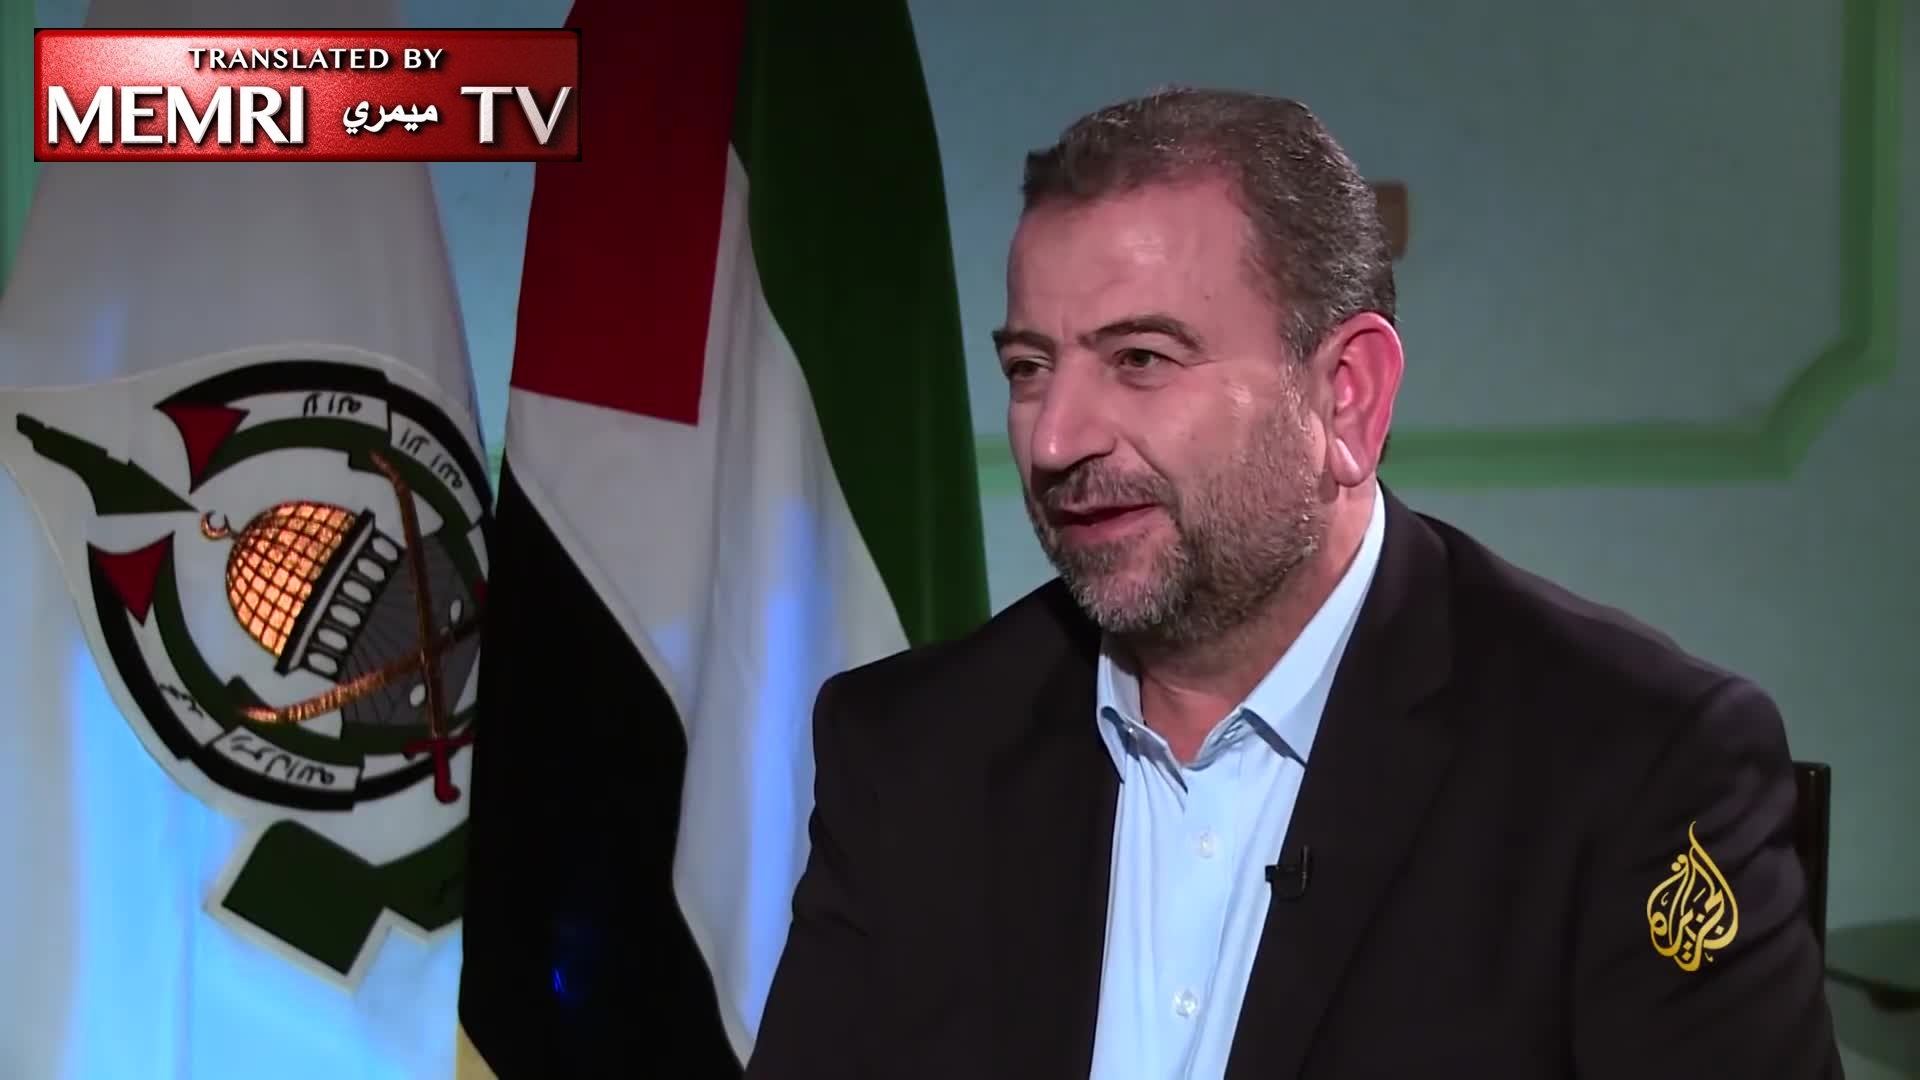 Top Hamas Official Saleh Al-Arouri Visits Iran, Hopes Iranian Aid to Hamas Will Intensify